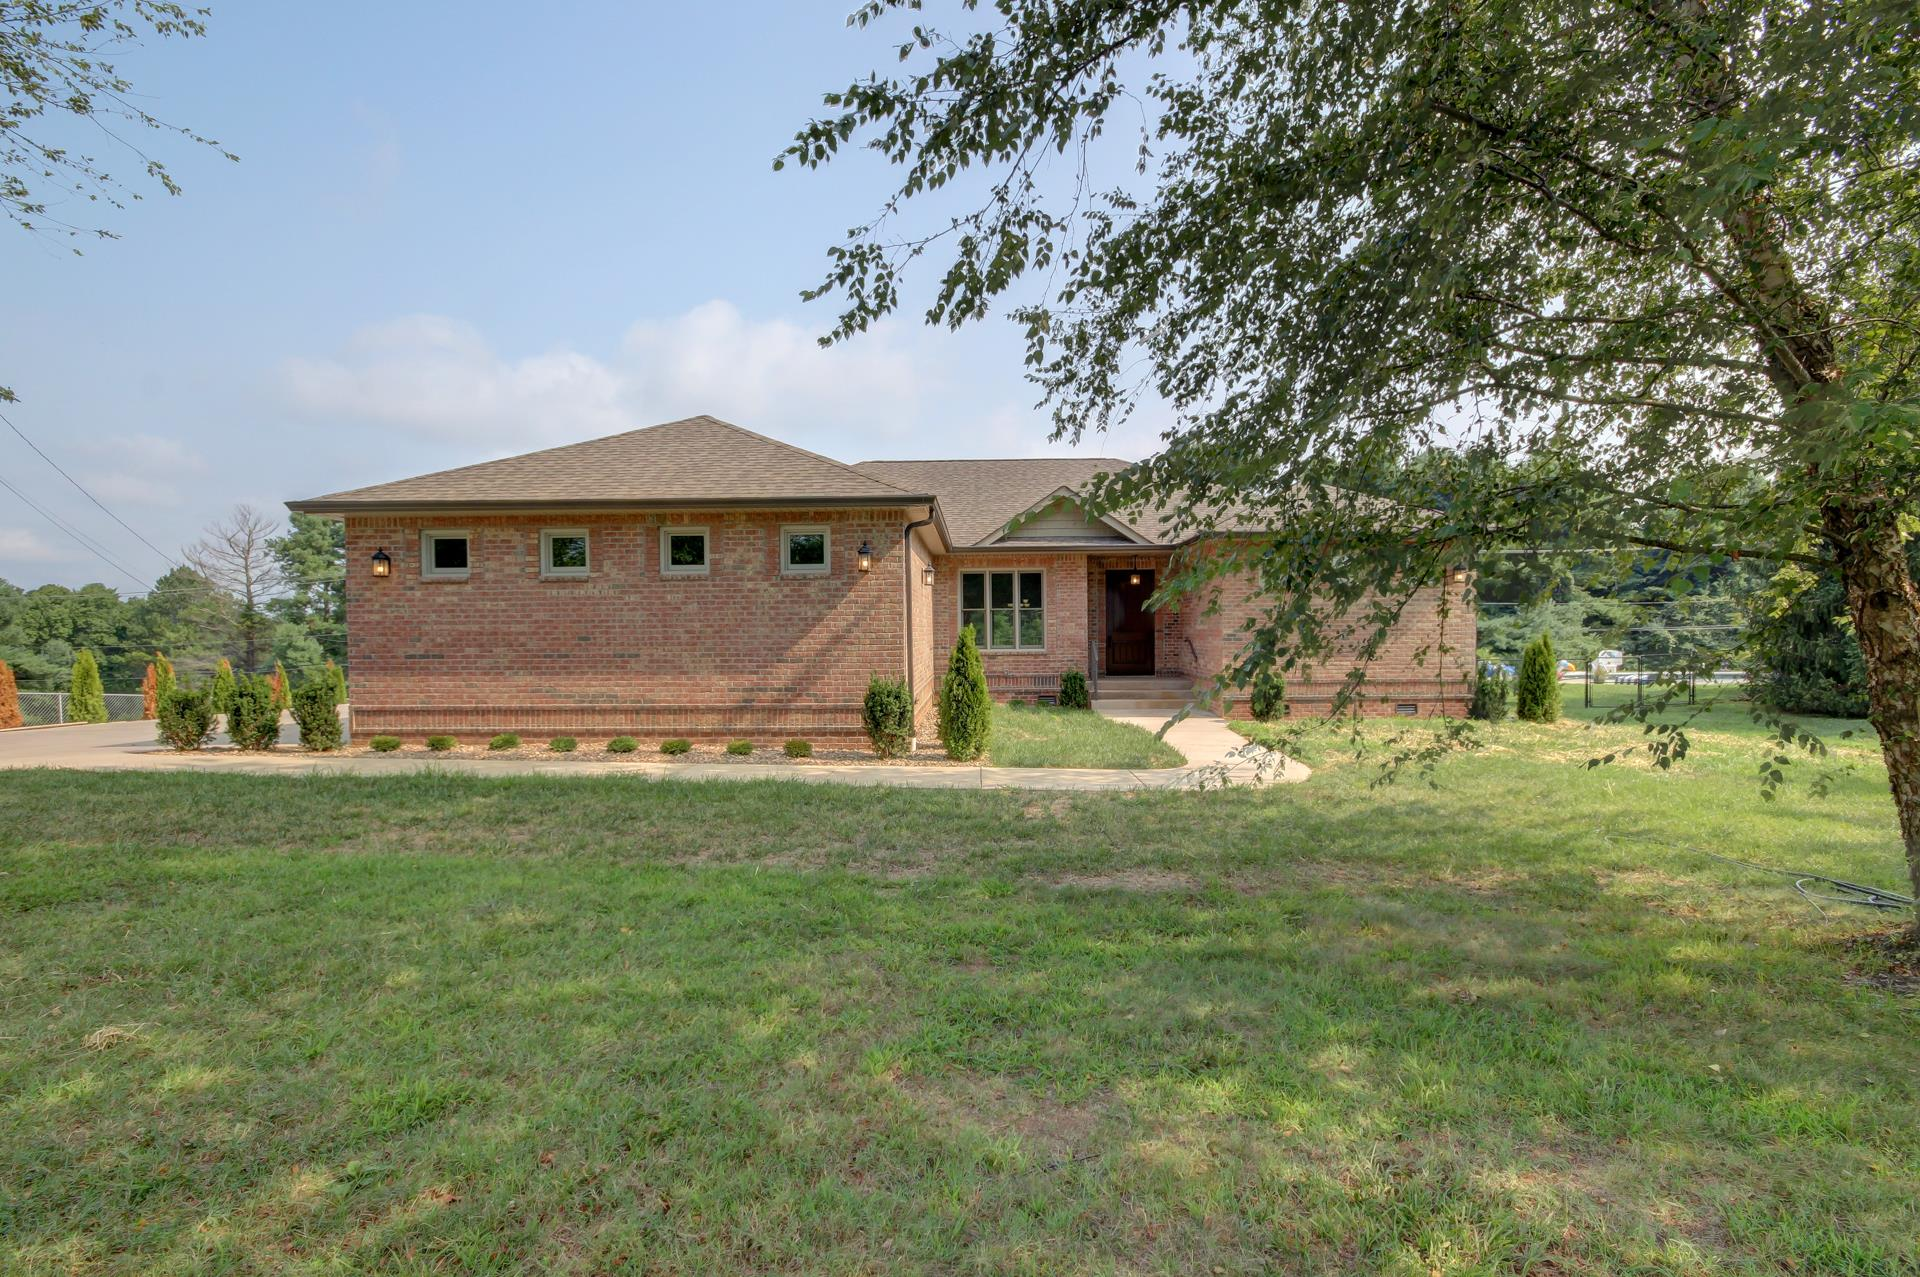 2137 Memorial Dr, Clarksville, TN 37043 - Clarksville, TN real estate listing